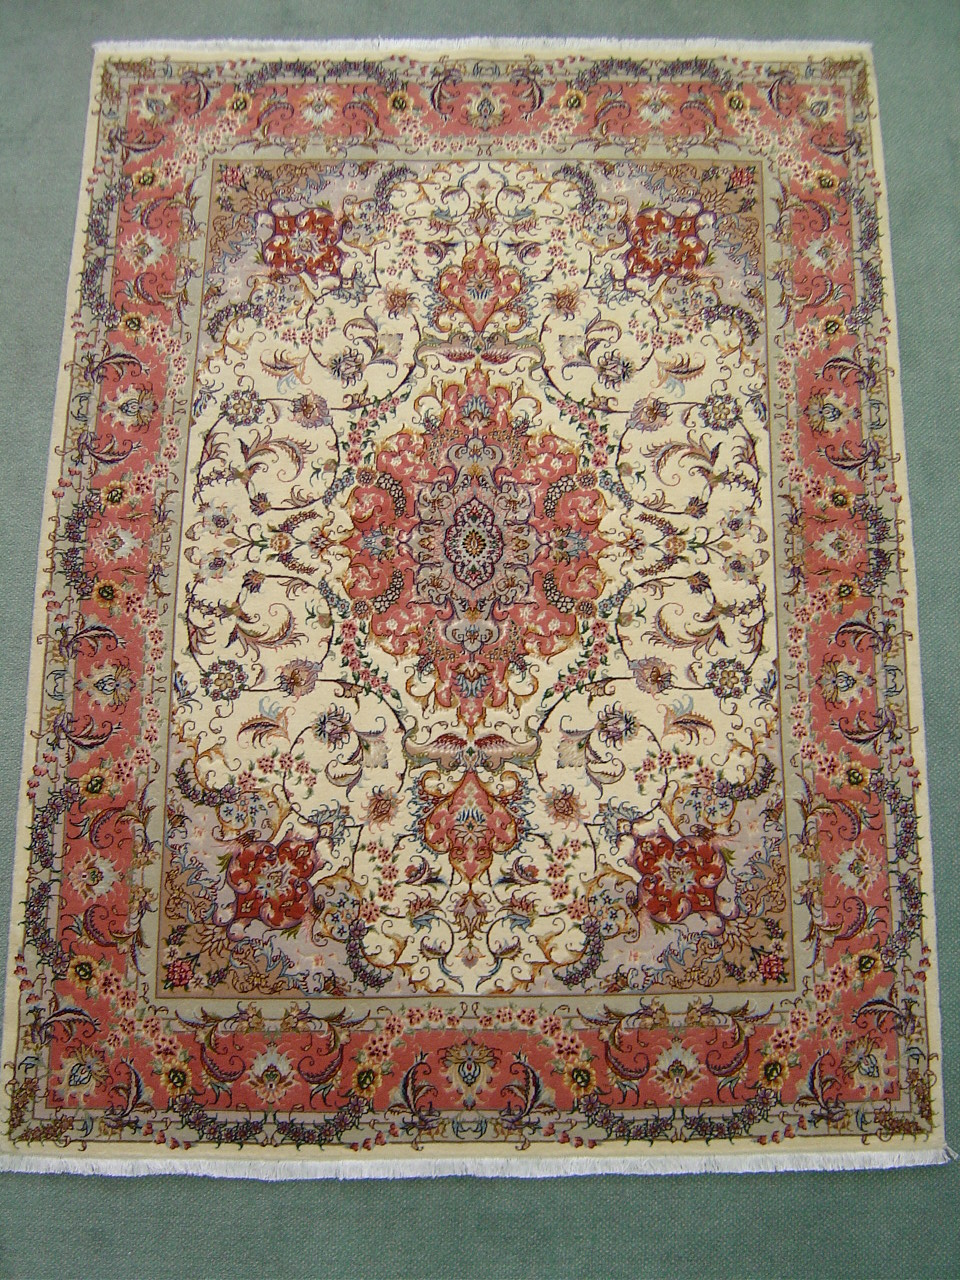 Tabriz Rugs Carpets Tebriz Rug Antique Persain Rugidea Information About Oriental And Persian